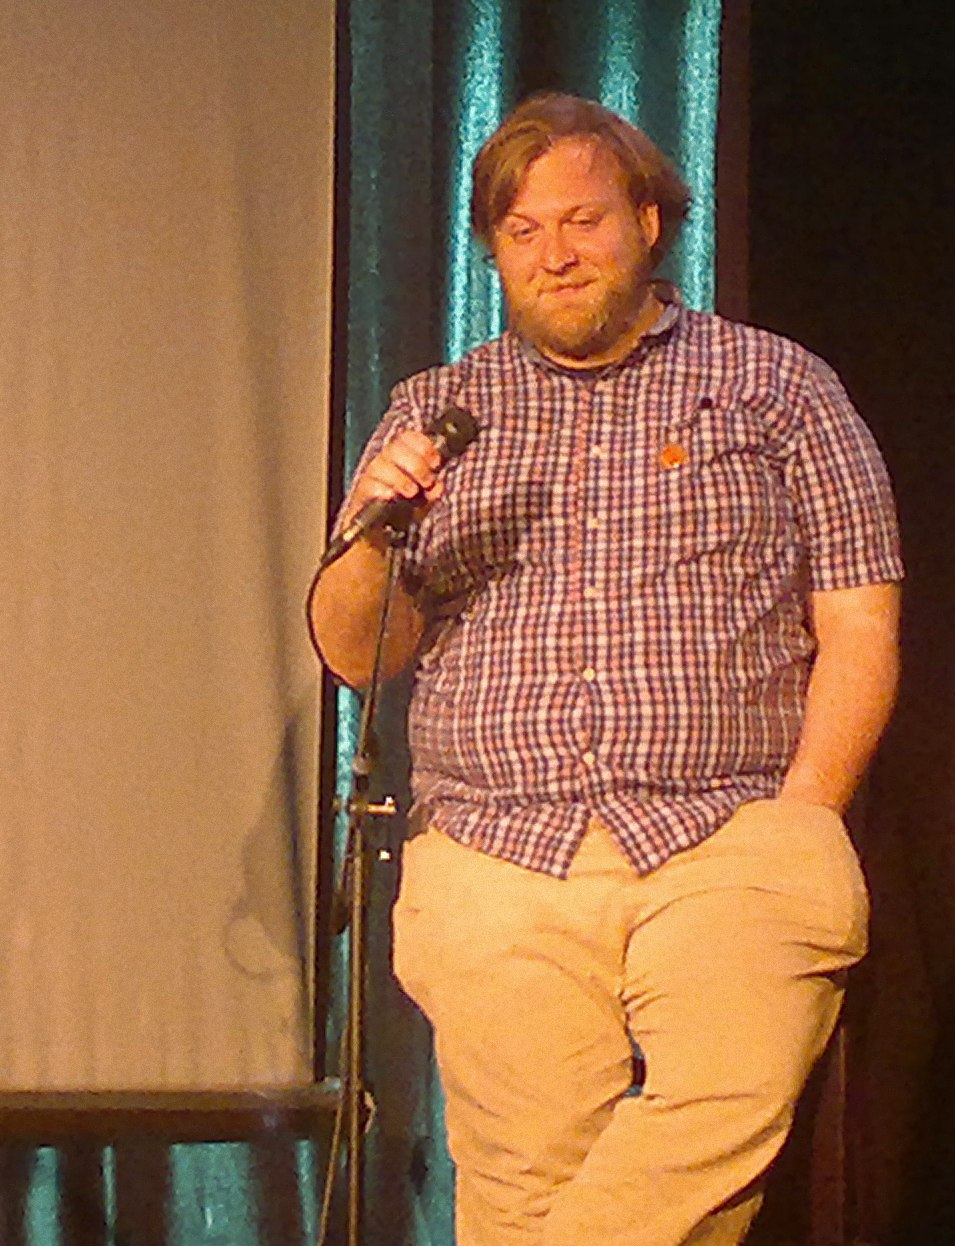 Pendleton Ward at the Tomorrow Show